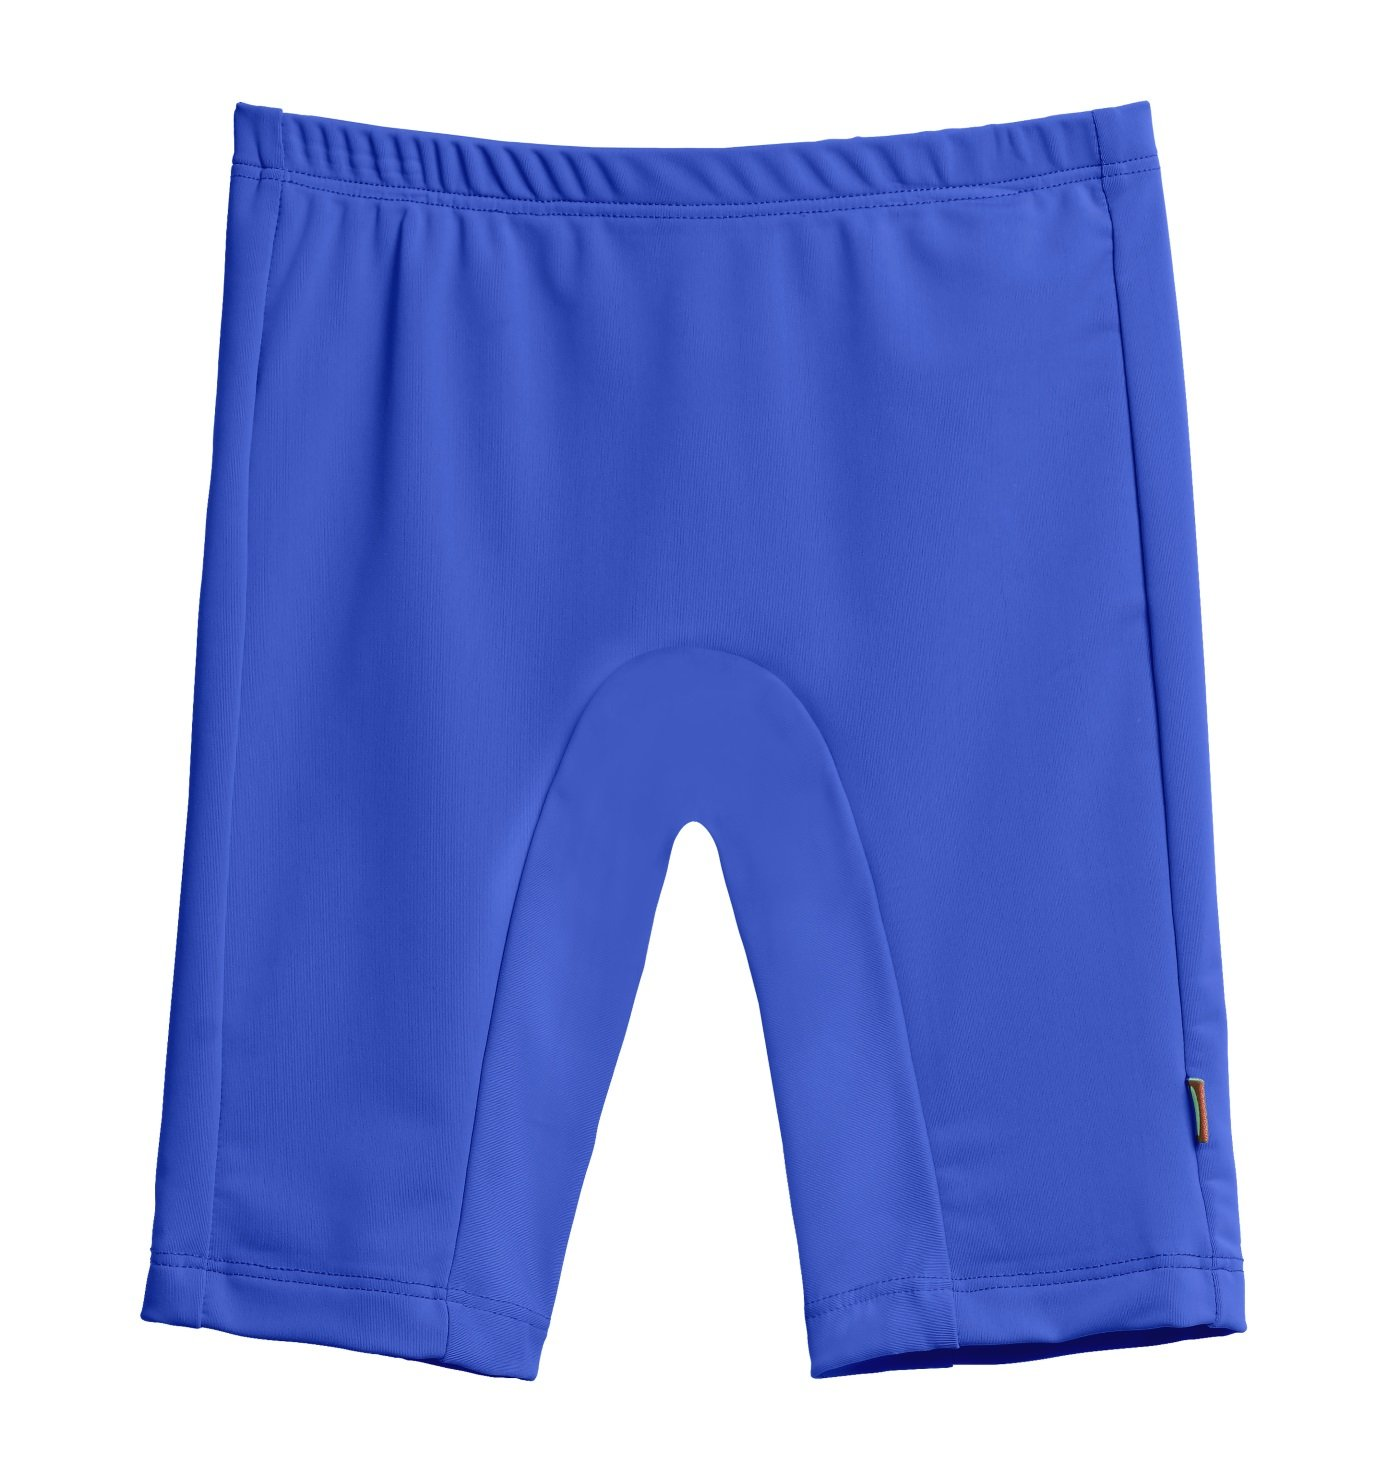 98e47783fe9c5 City Threads Boys Girls' SPF50+ Jammers Swim Shorts Bottoms Made in USA  product image